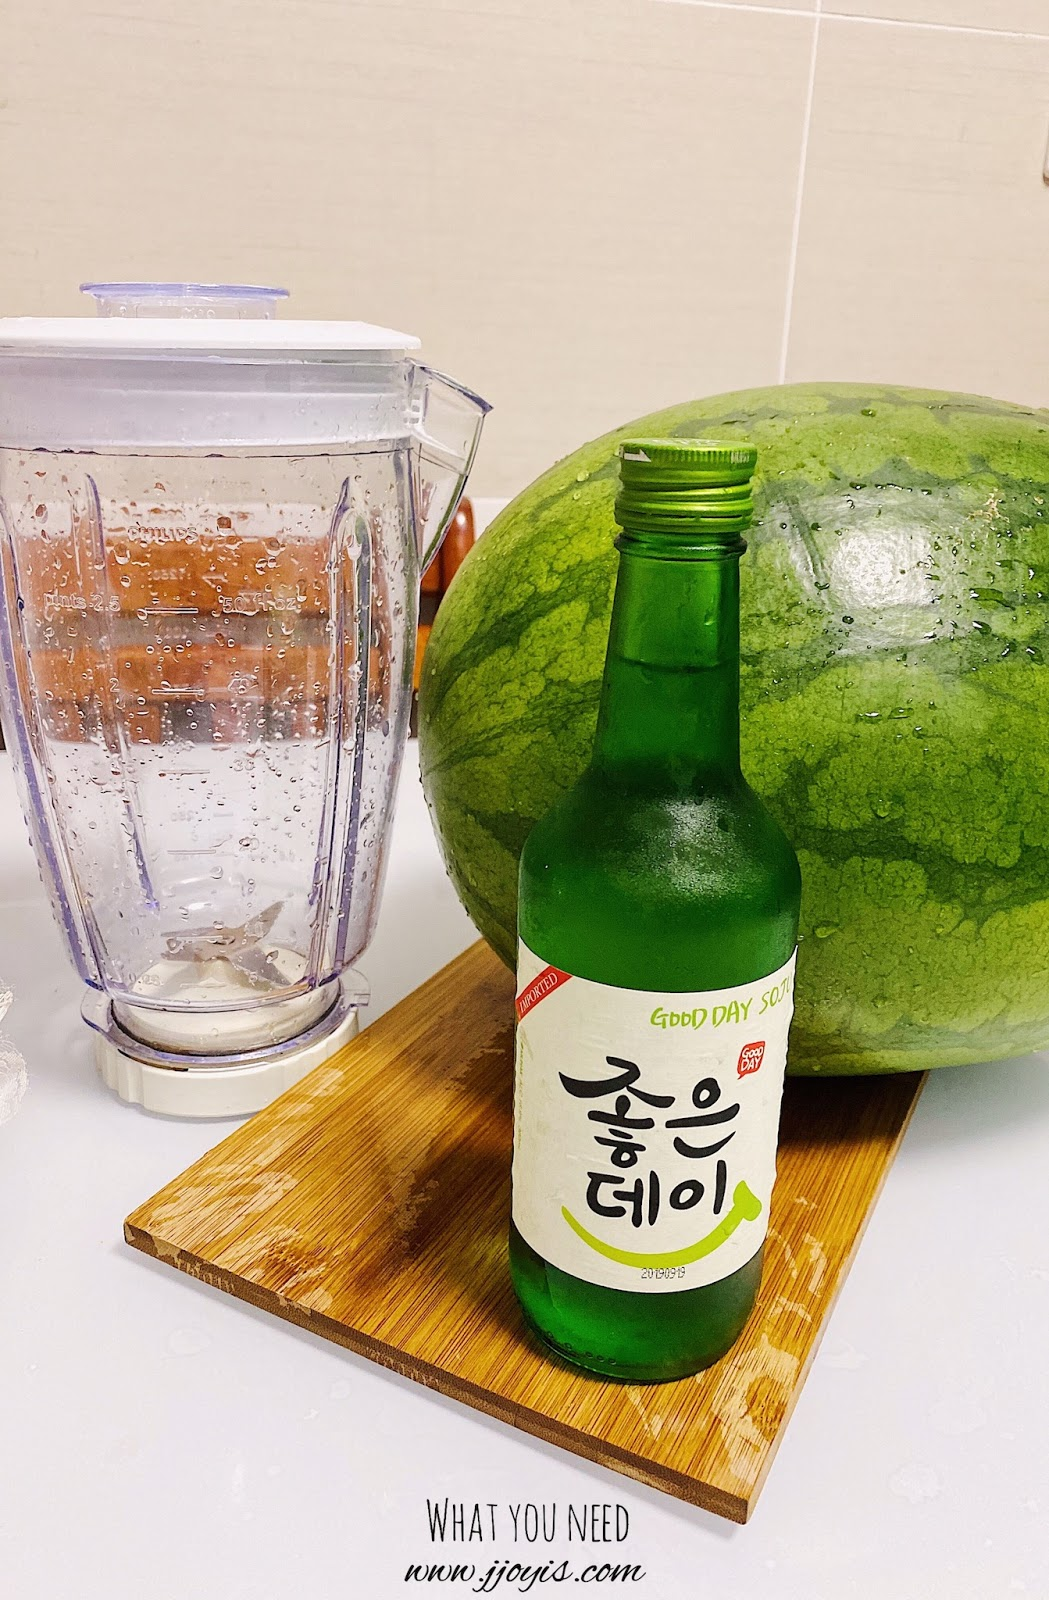 homemade, watermelon soju, unflavoured soju, watermelon vodka, easy recipe, subak soju, subak-soju, what you need, ingredients, equipment needed